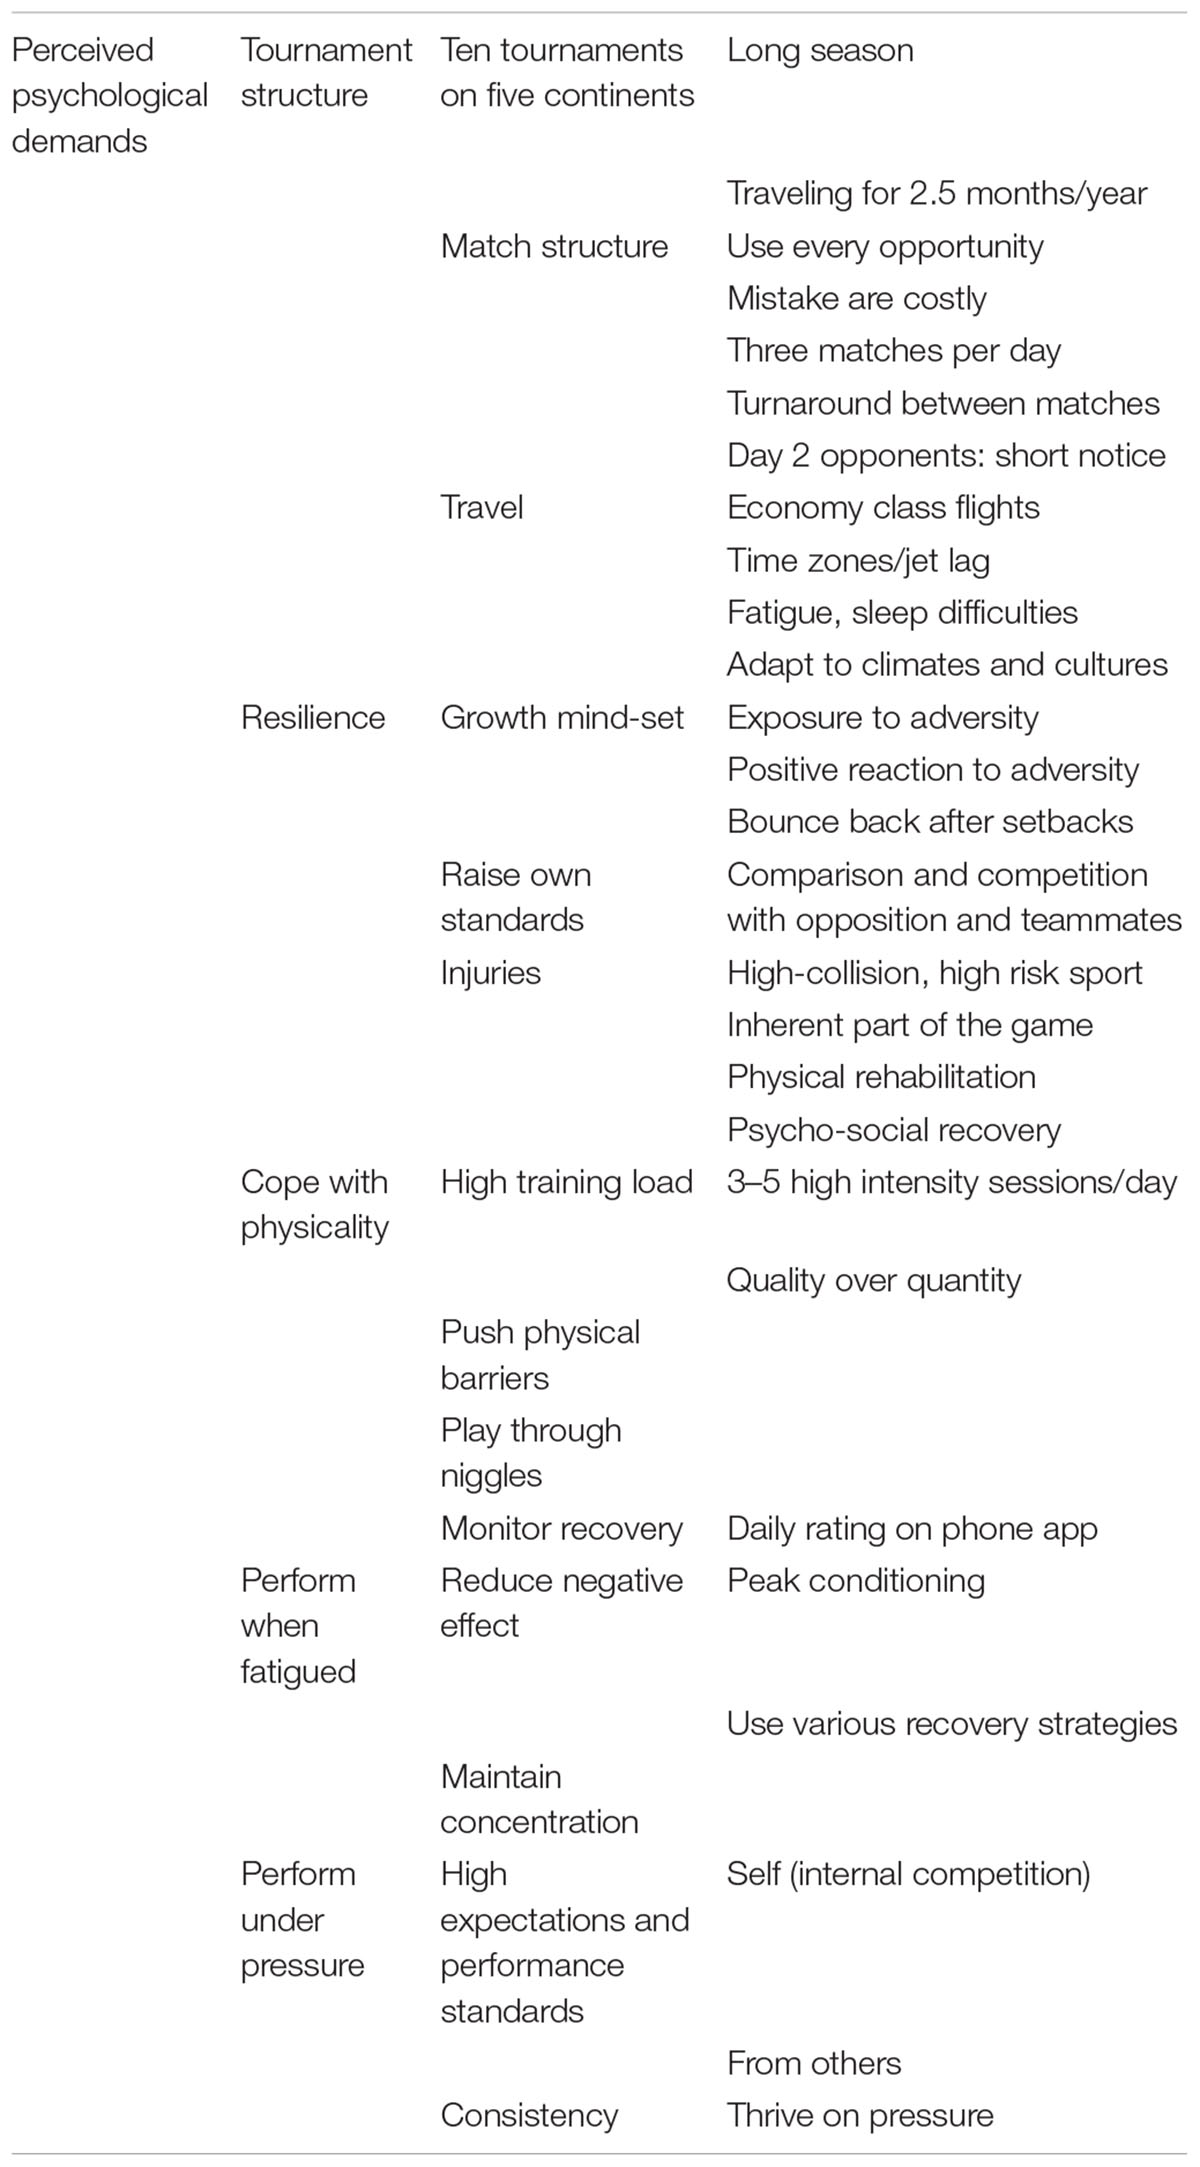 Frontiers | Psychological Demands of International Rugby